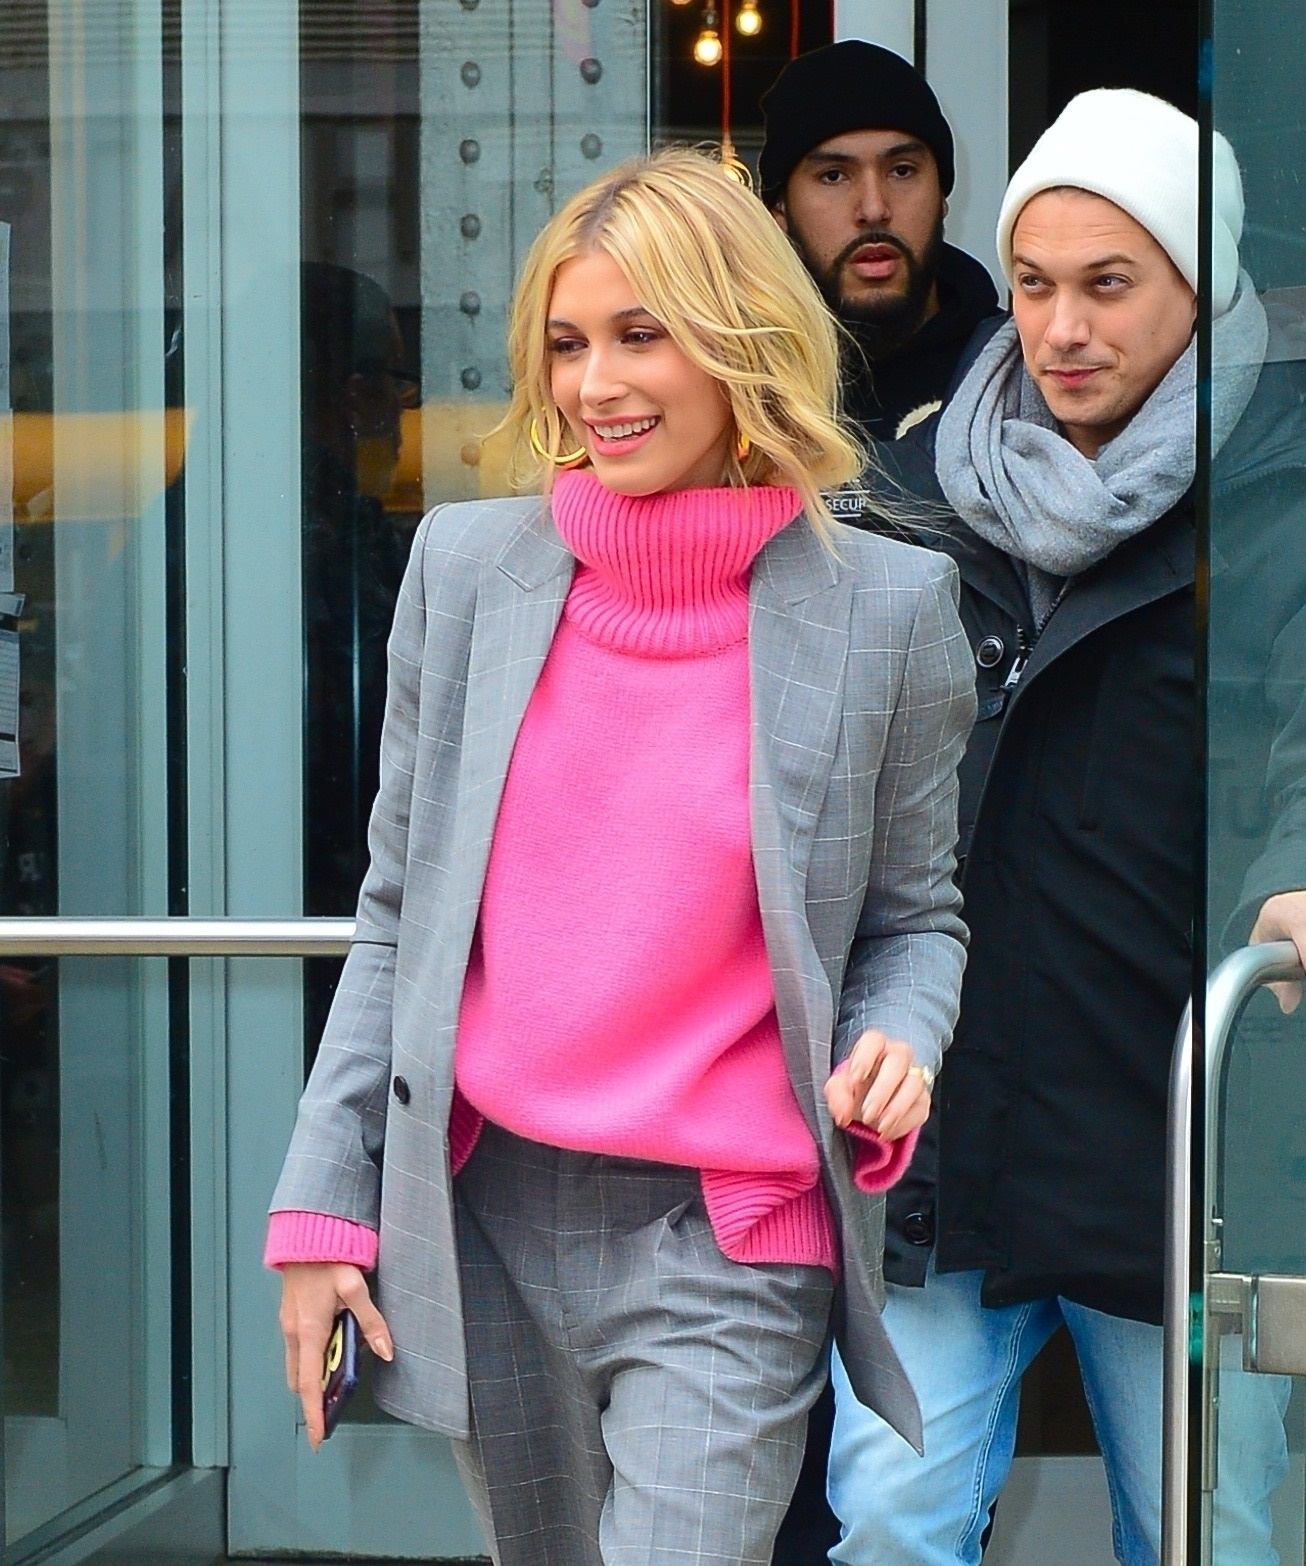 Hailey Baldwin - Strikes a pose in hot pink turtleneck under grey suit out in NYC February 11, 2019